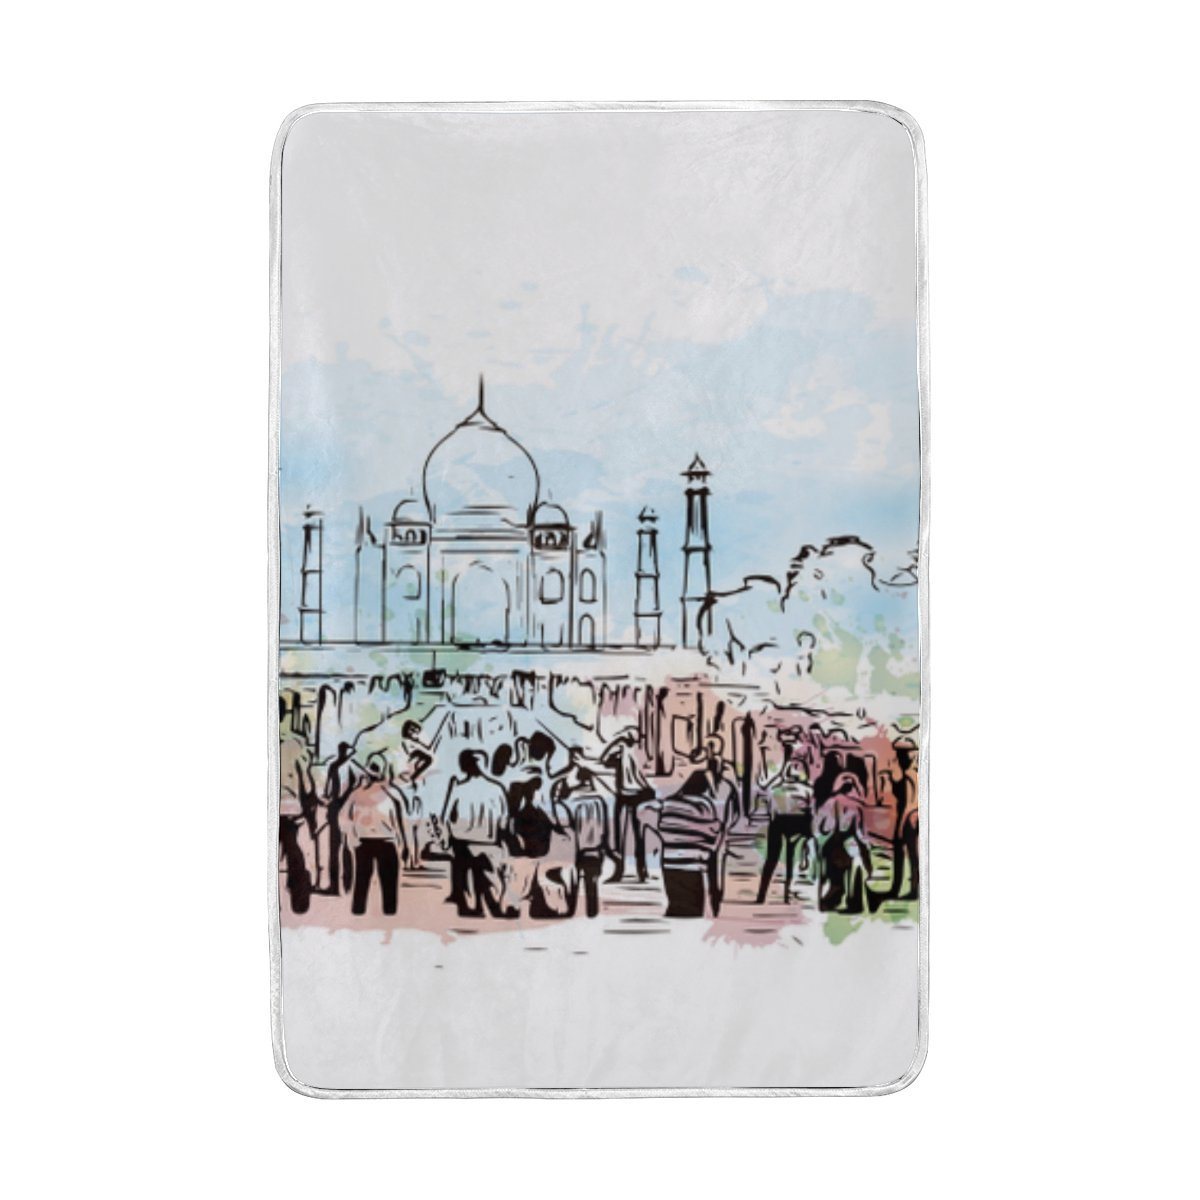 ALAZA Cooper girl India Taj Mahal Throw Blanket Soft Warm Bed Couch Blanket Lightweight Polyester Microfiber 60x90 Inch